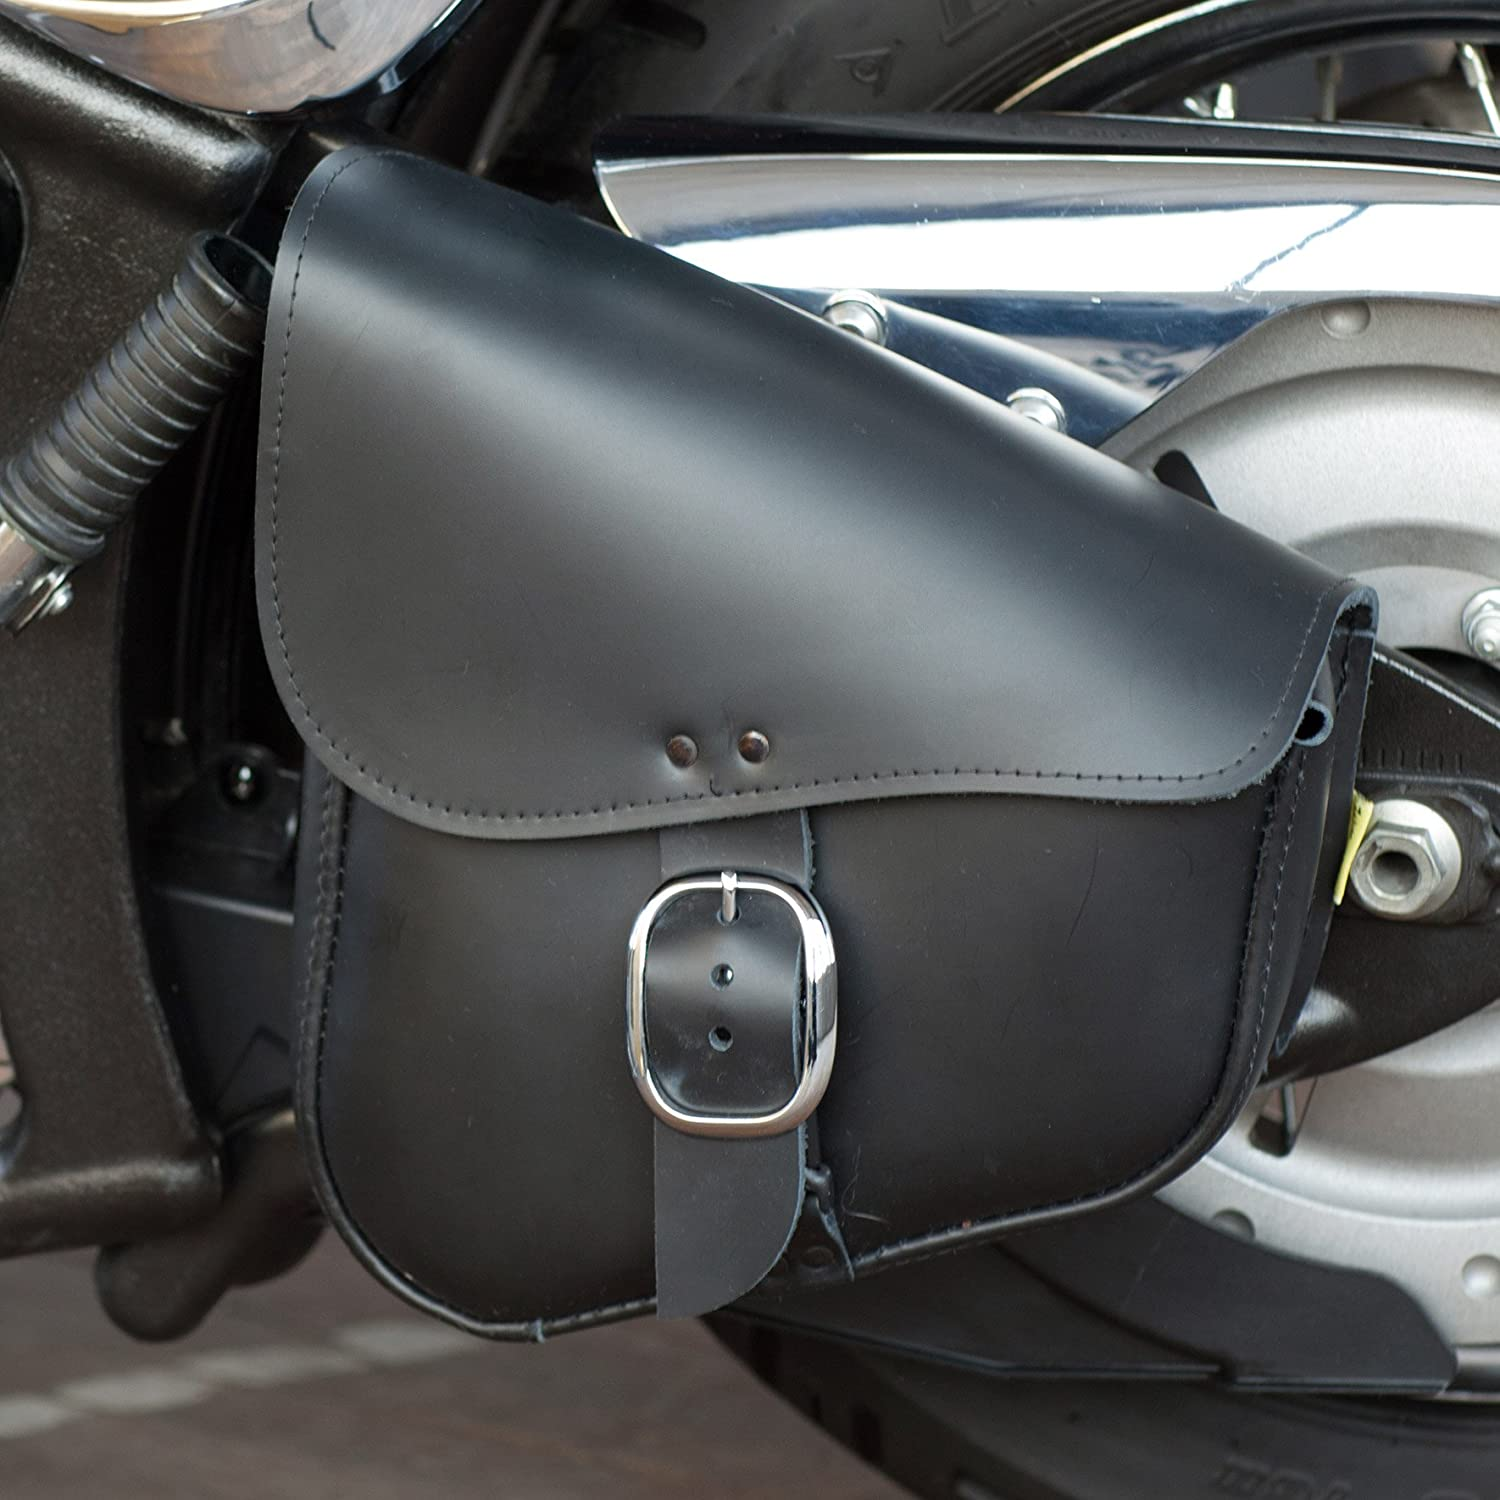 Chrome Buckle 9 Liter Capacity Dowco Willie /& Max 59823-00 Triangulated Leather Motorcycle Swingarm Bag Black